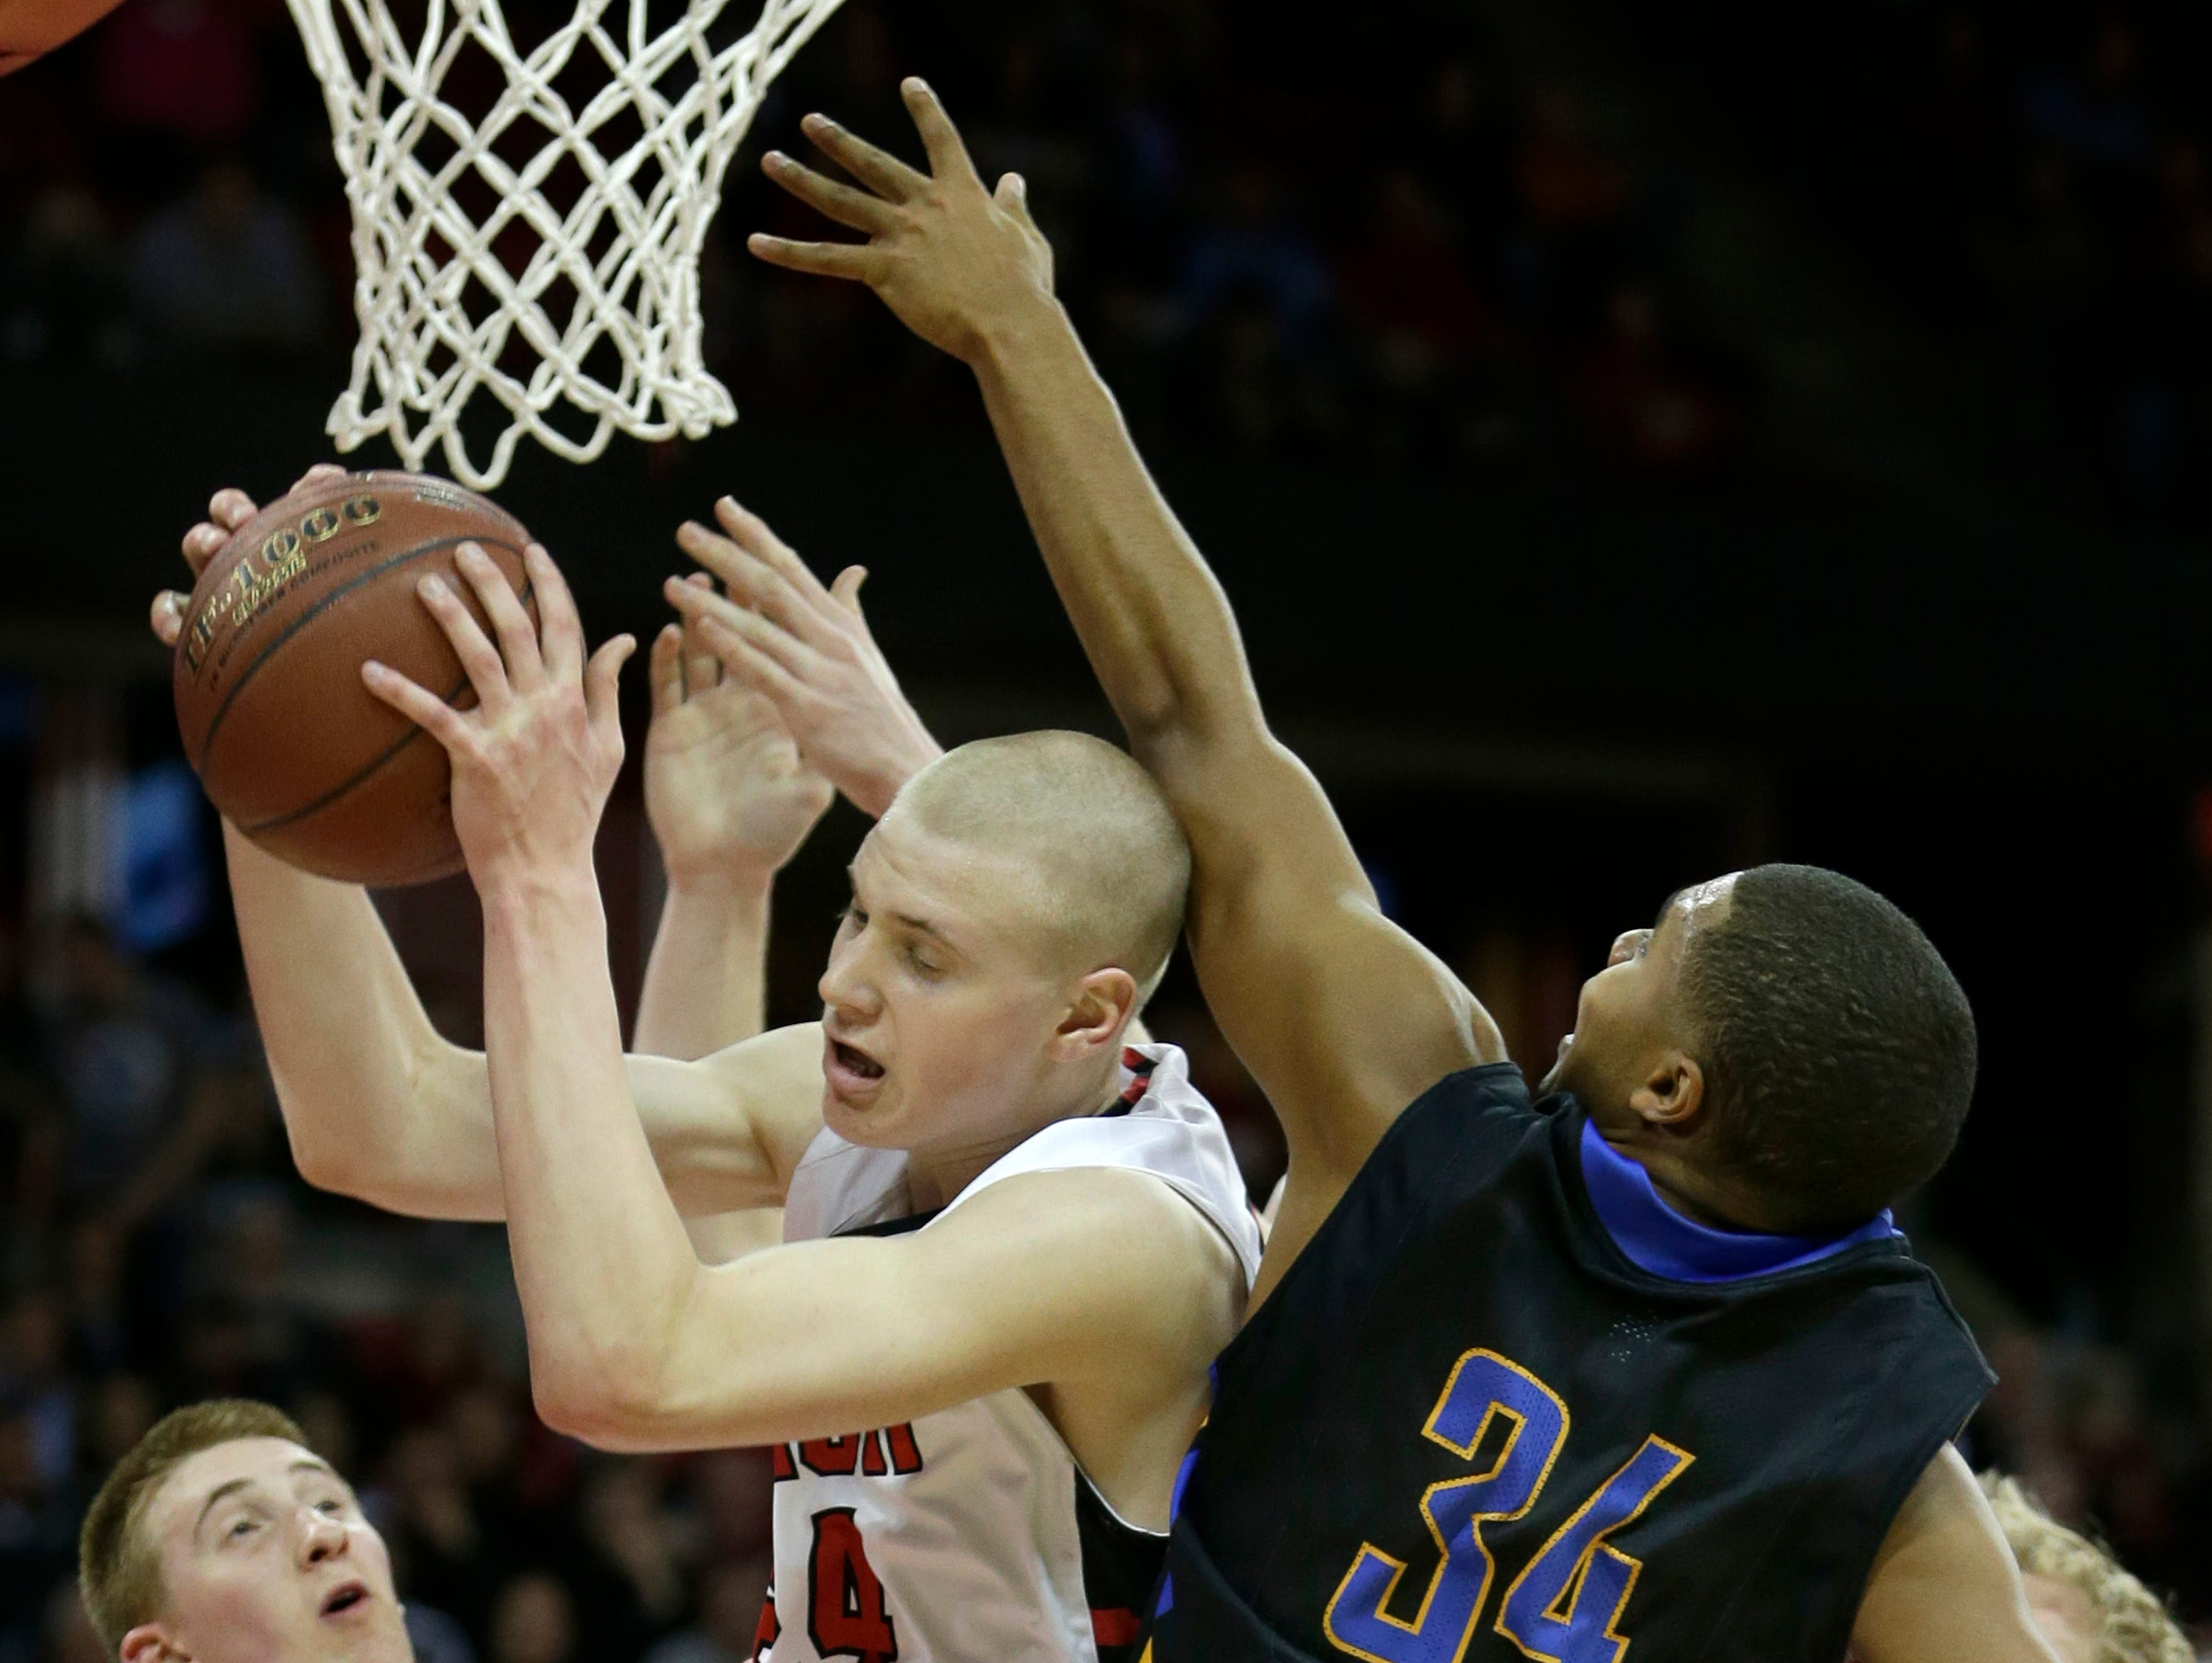 SPASH's (center) Joey Hauser and Germantown's Dwayne Lawhorn Jr. battle for a rebound during Saturday's WIAA Divsion 1 boys' state basketball championship at the Kohl Center in Madison.